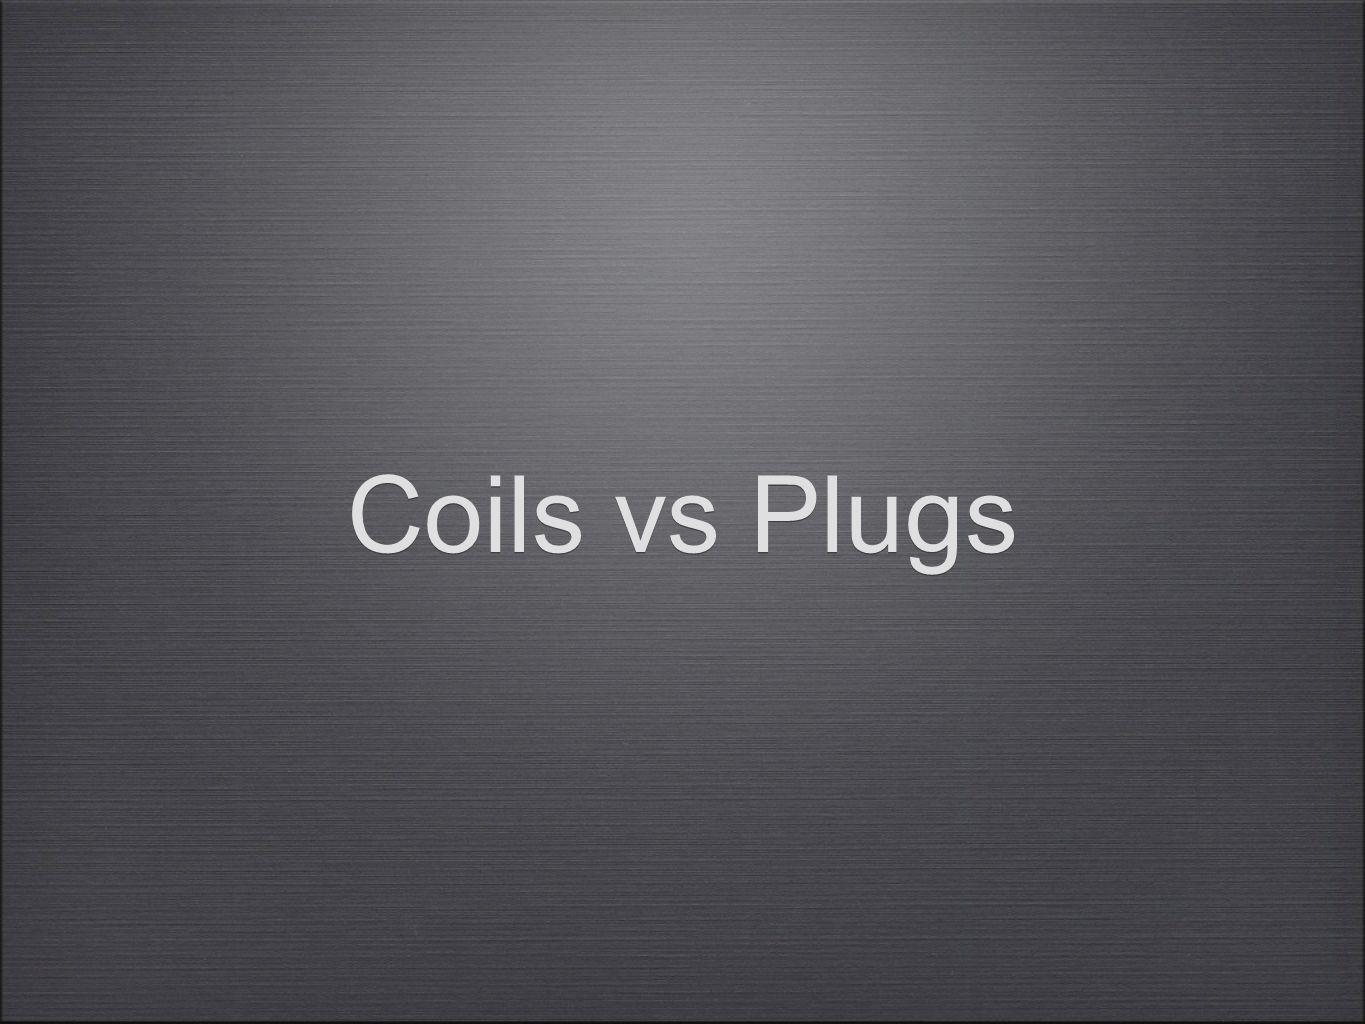 Coils vs Plugs